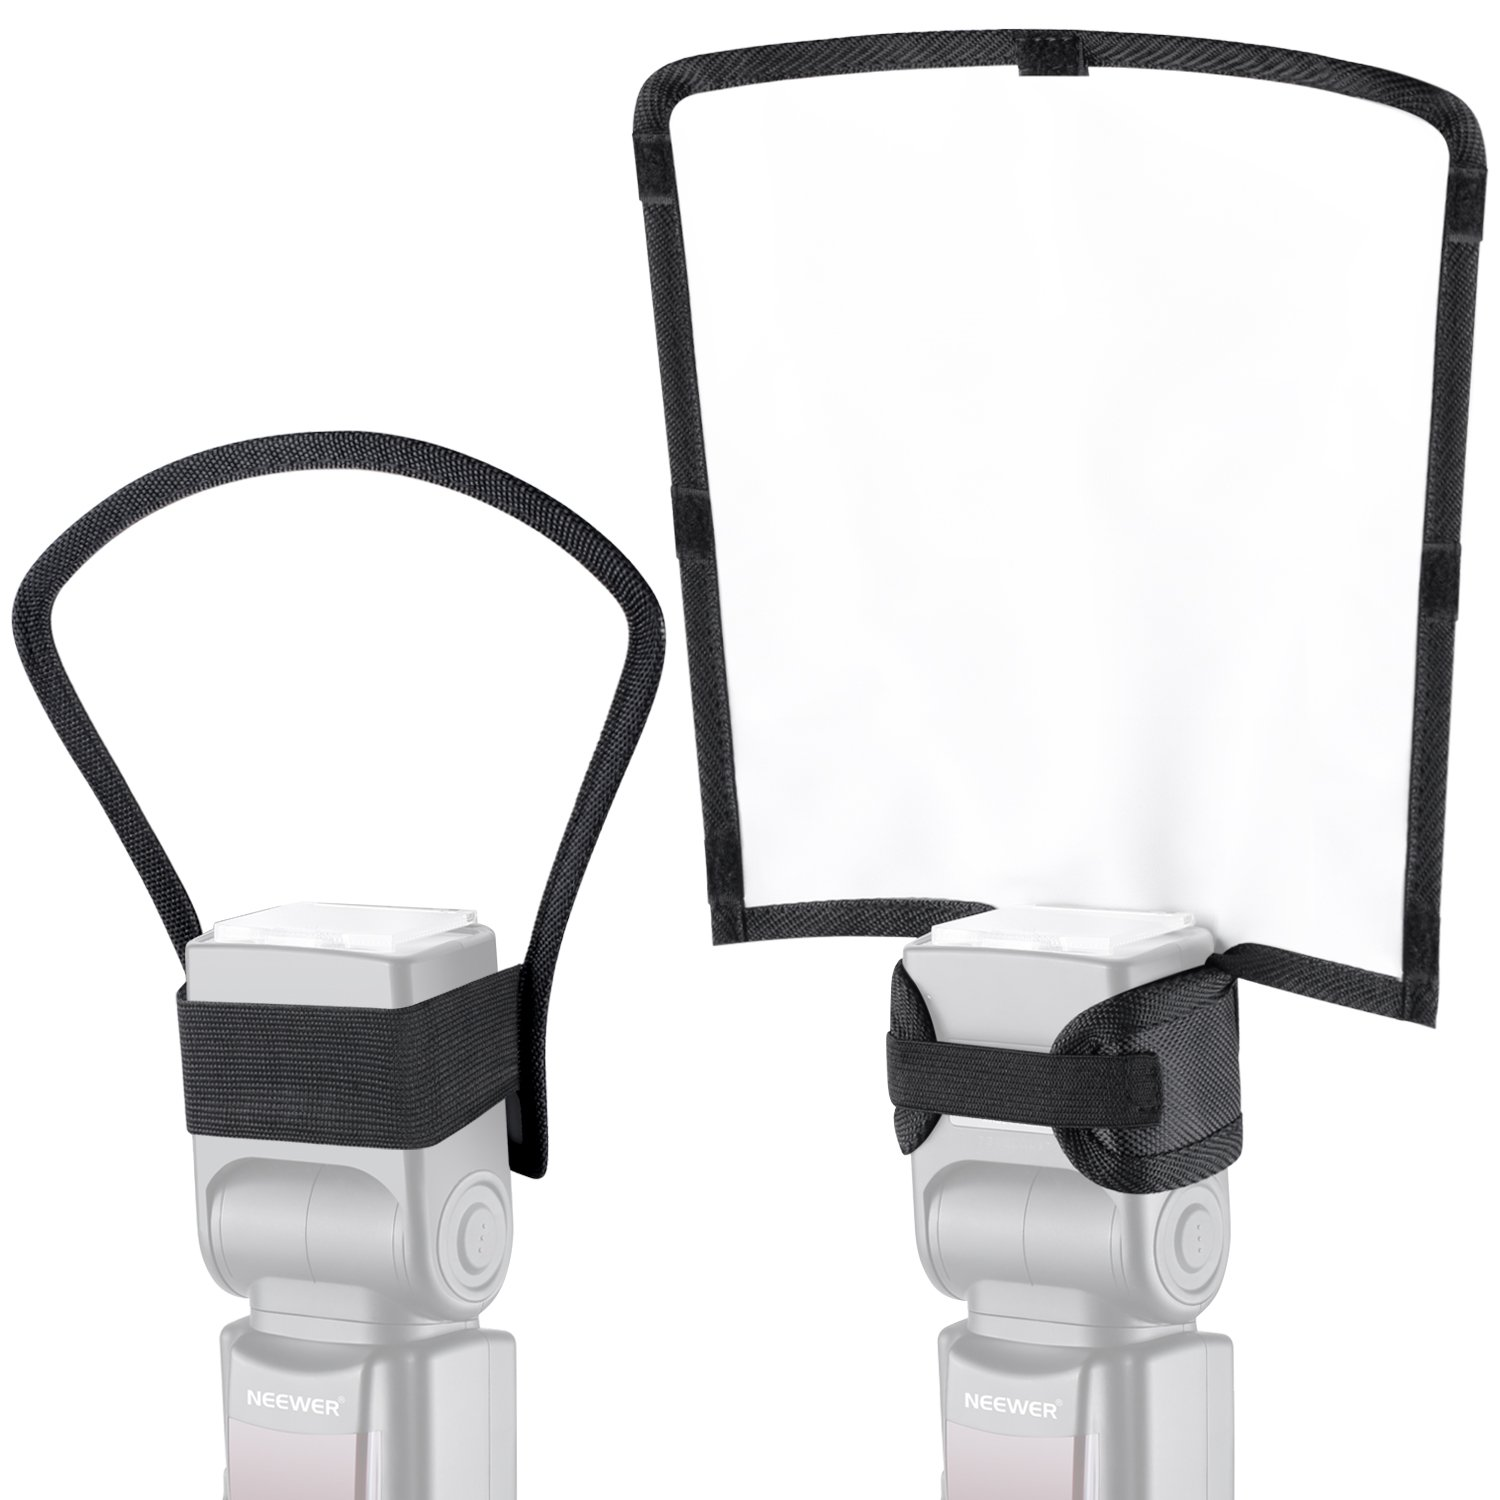 Neewer 2 Pieces Camera Speedlite Flash Softbox Diffuser Kit, 10x9x8inches Bendable White Reflector and 7x8x4 inches Silver/White Two-Side Reflector, Universal Mount for Nikon Canon Sony by Neewer